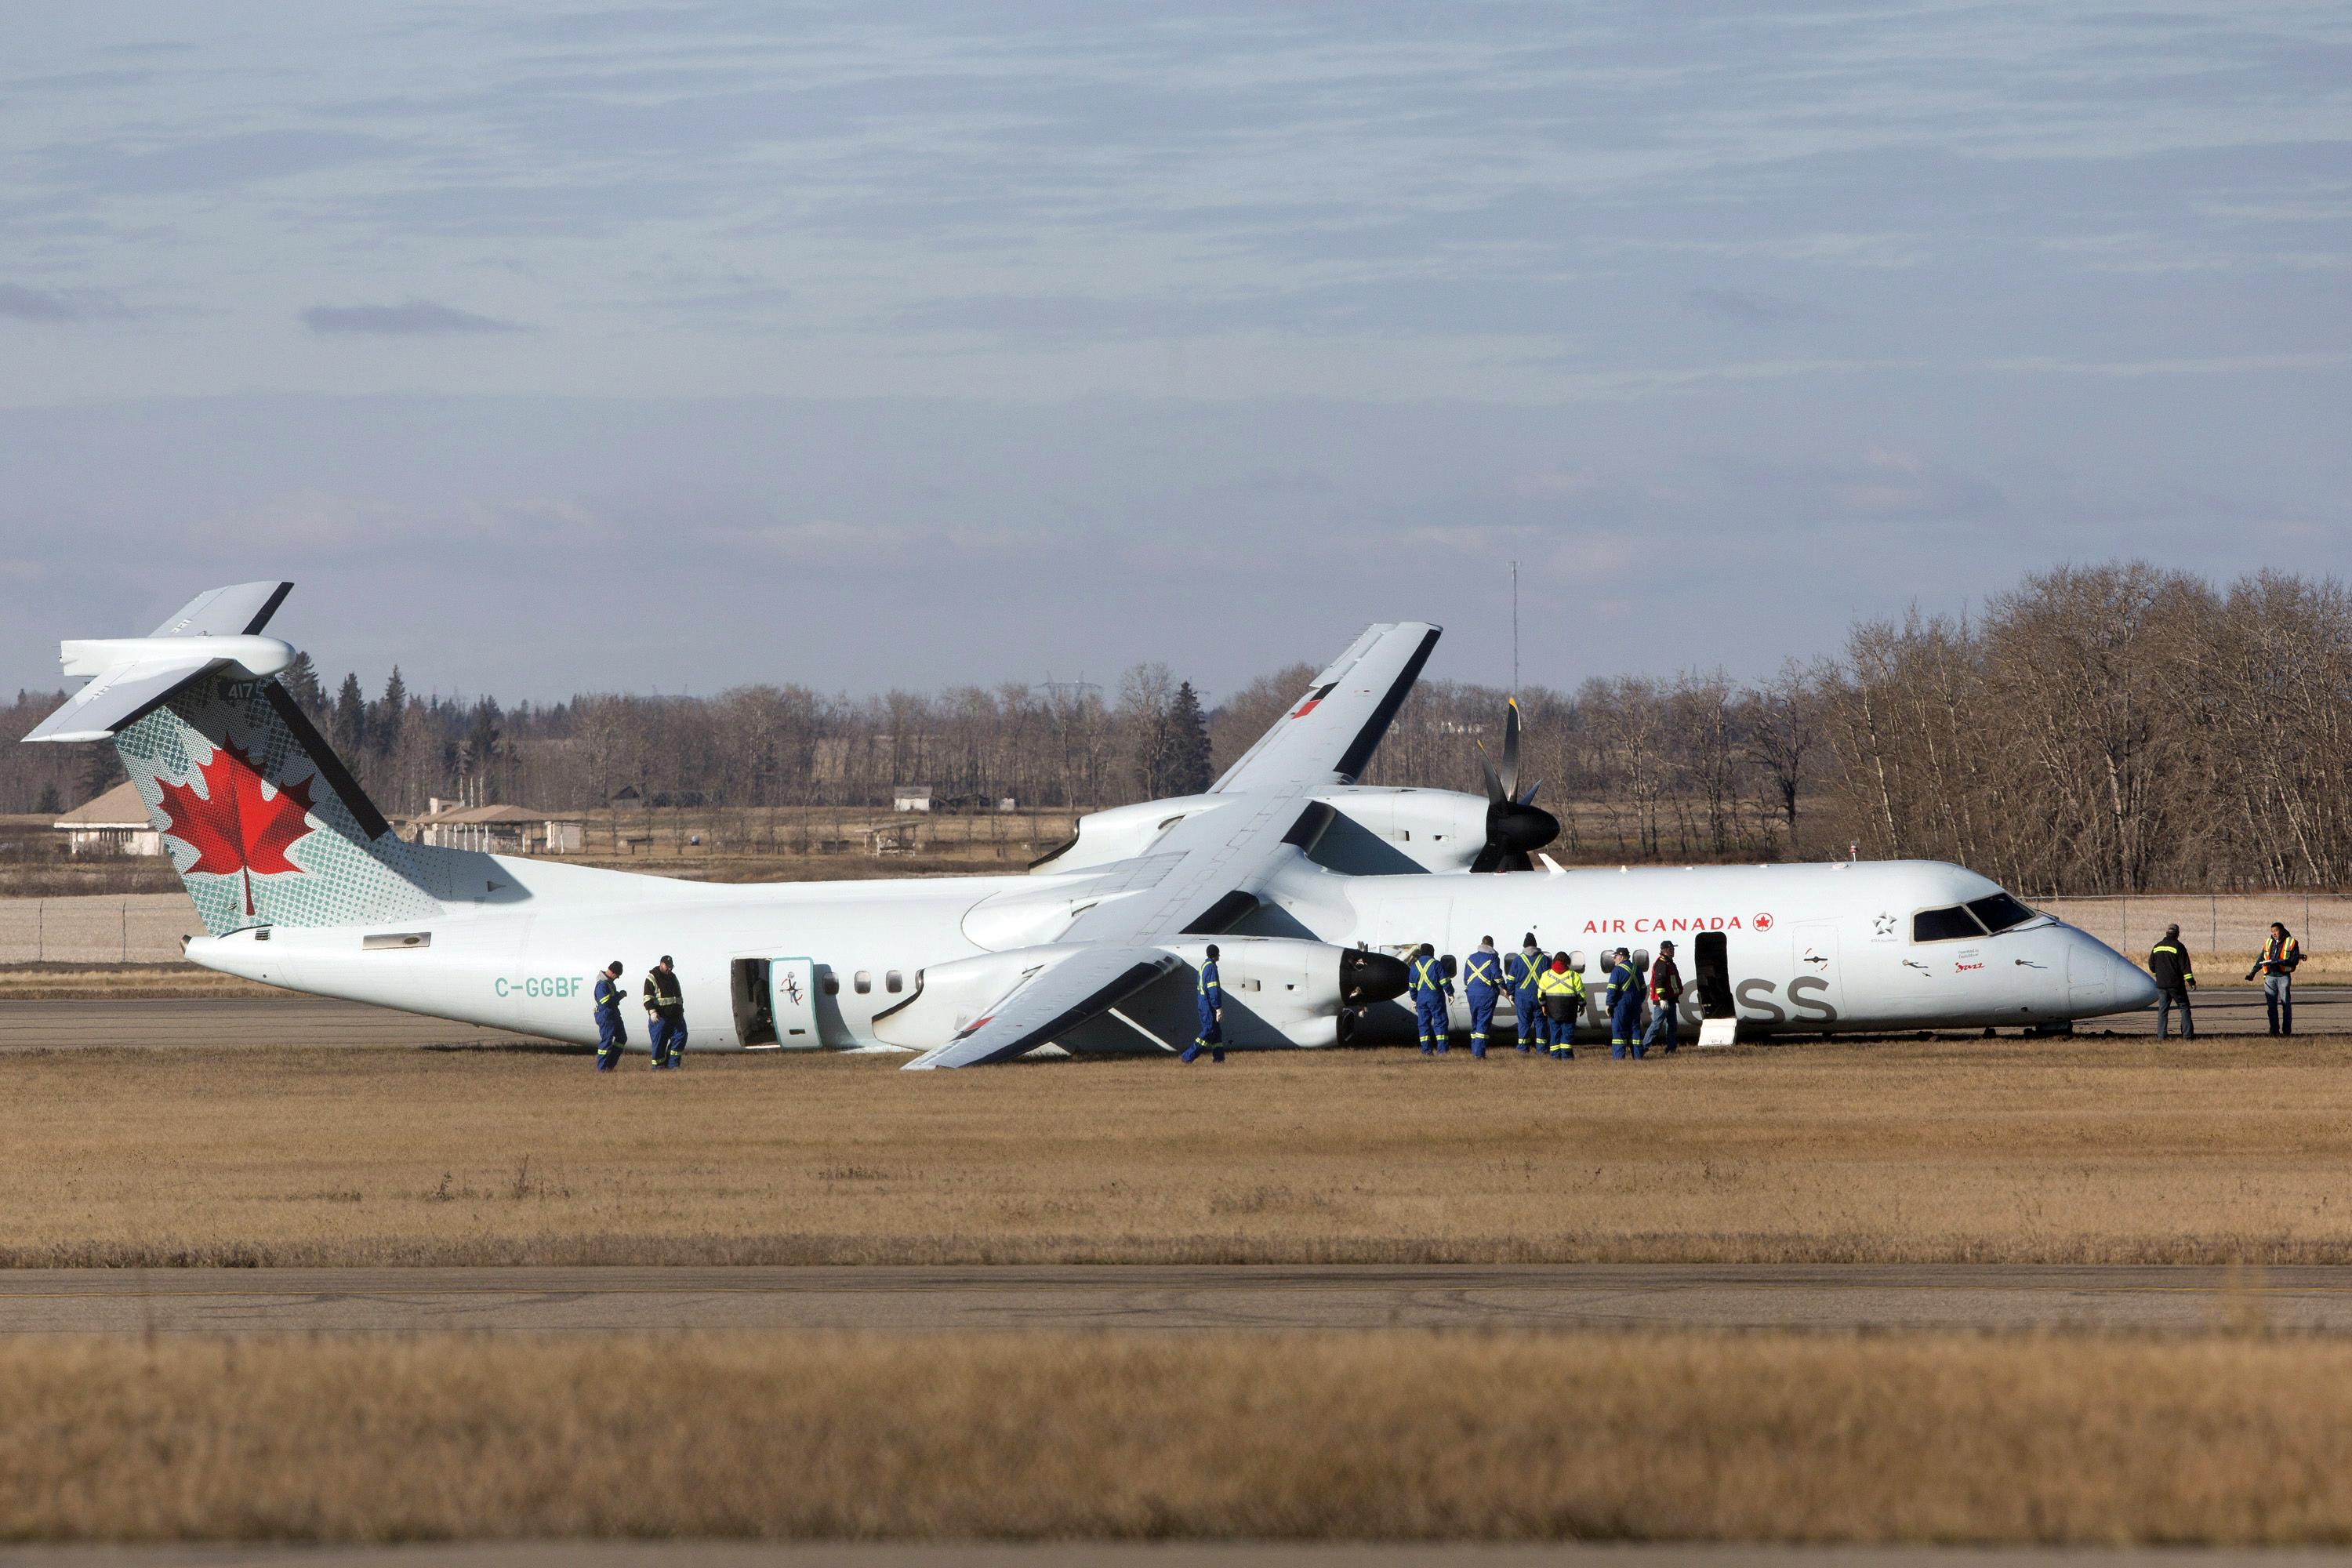 Air Canada Plane Was Airborne Again After Initial Impact